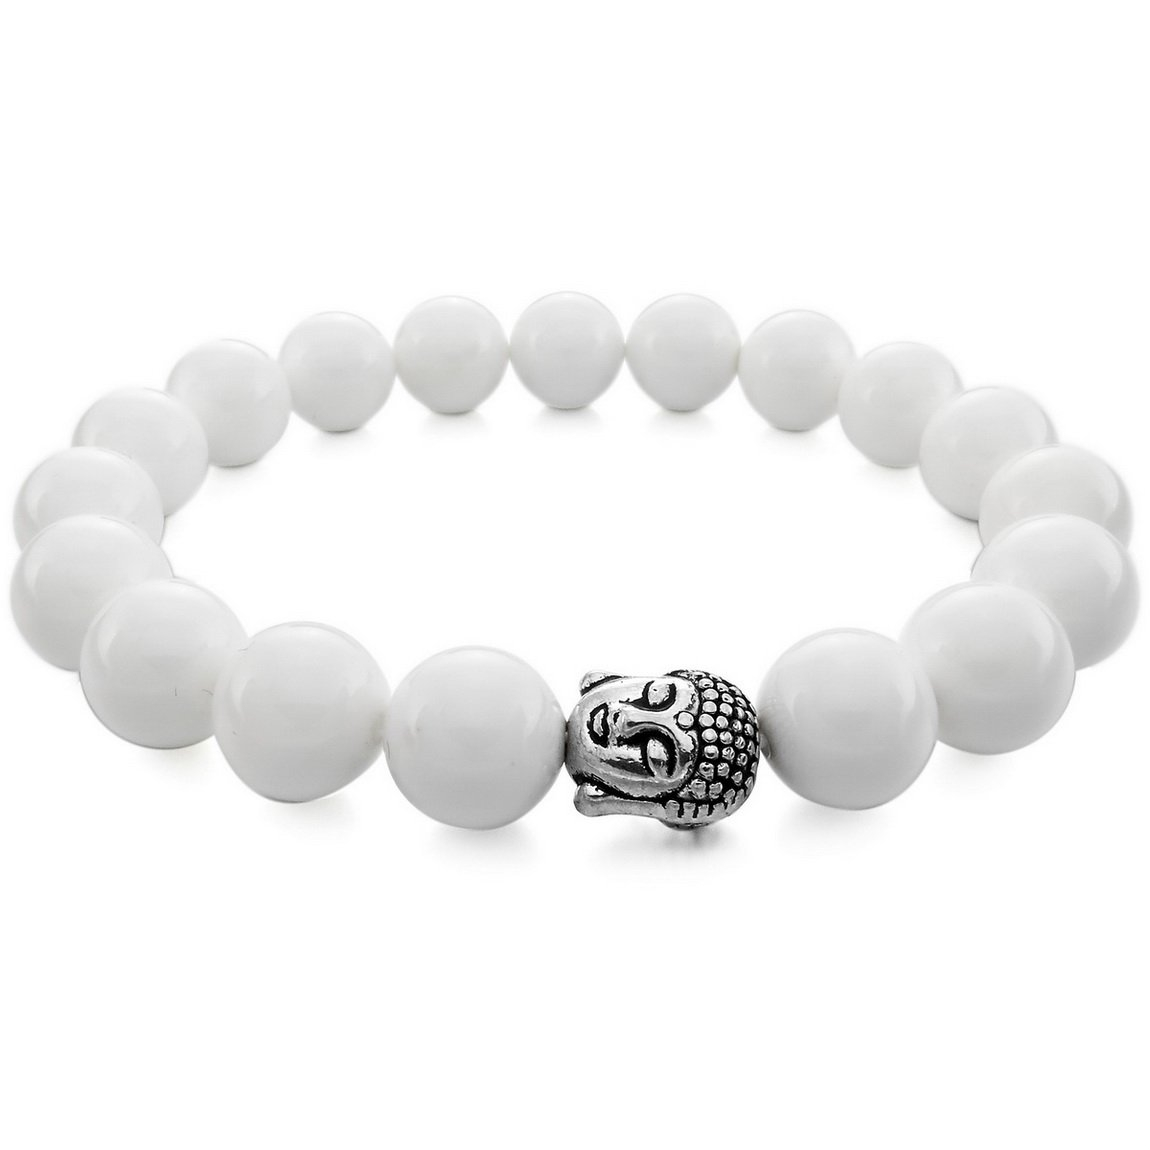 INBLUE Women, Men's 10mm Energy Bracelet Link Wrist Simulated Buddha Mala Bead INBLUE Men INBLUE Jewelry mnb1076-10.0